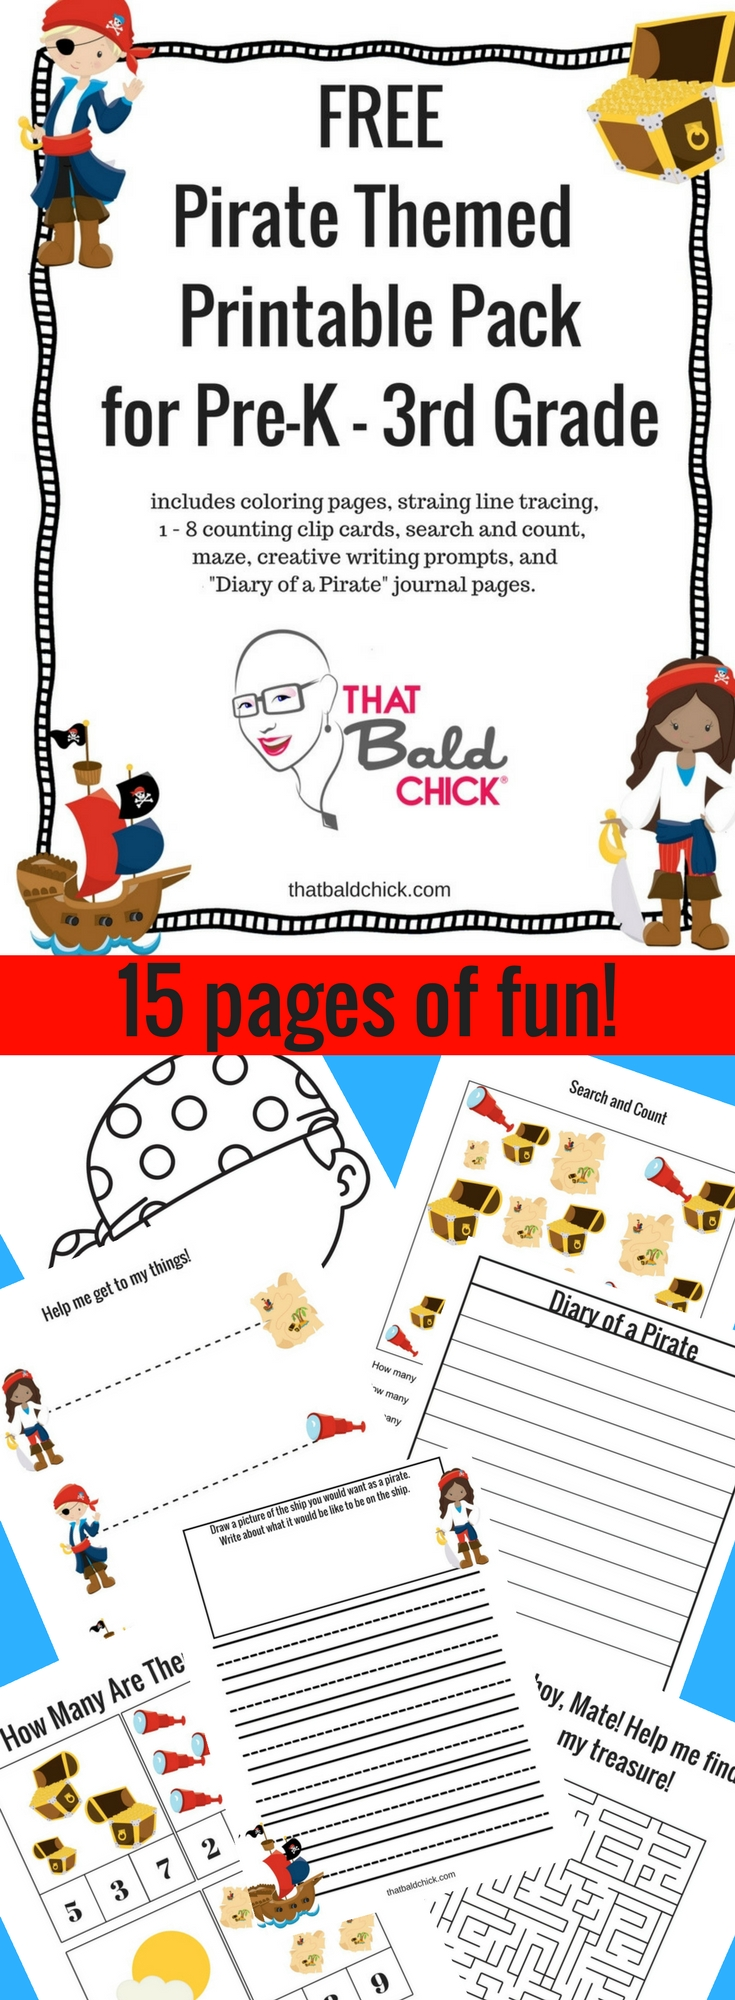 15 pages of fun pirate themed pages at thatbaldchick.com